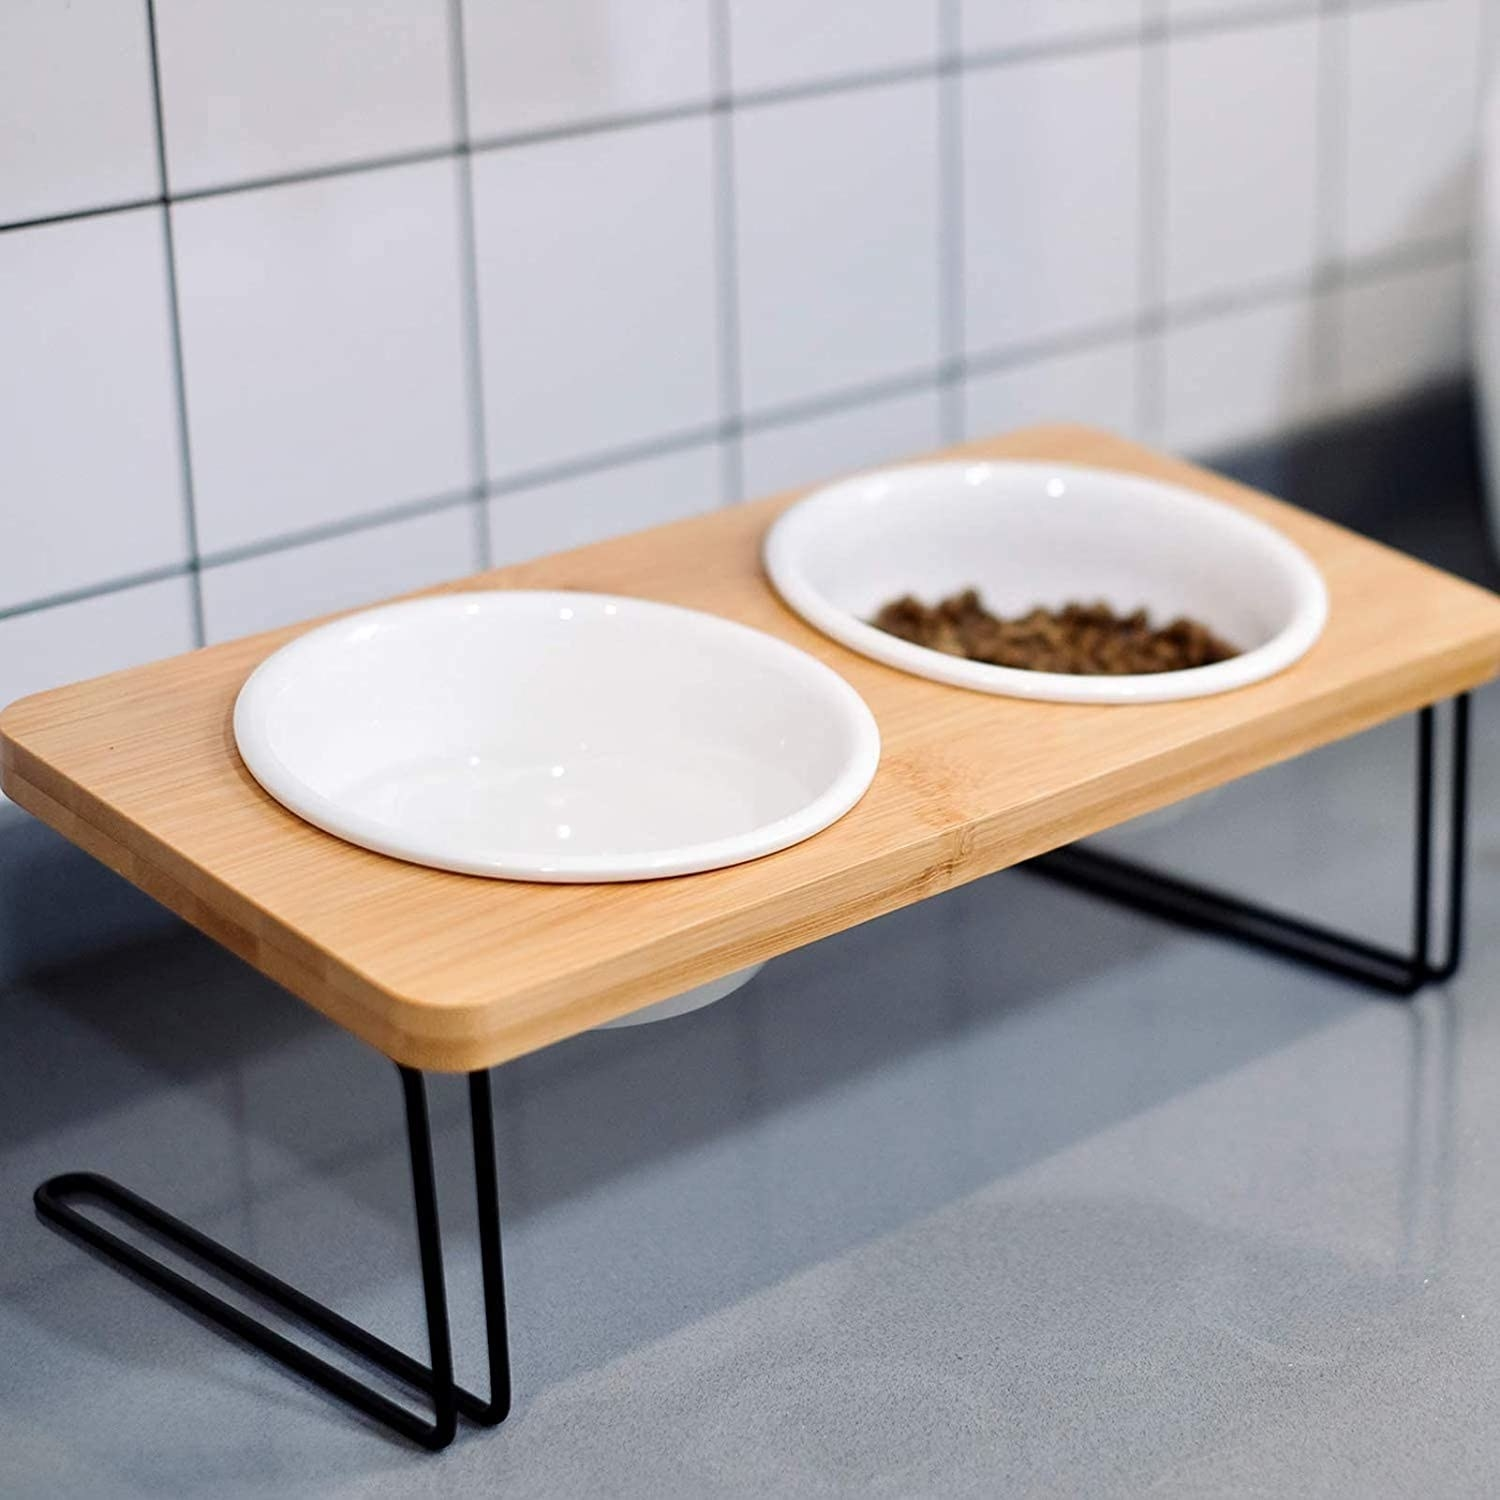 White bowls set inside natural wood table with black iron pipe legs